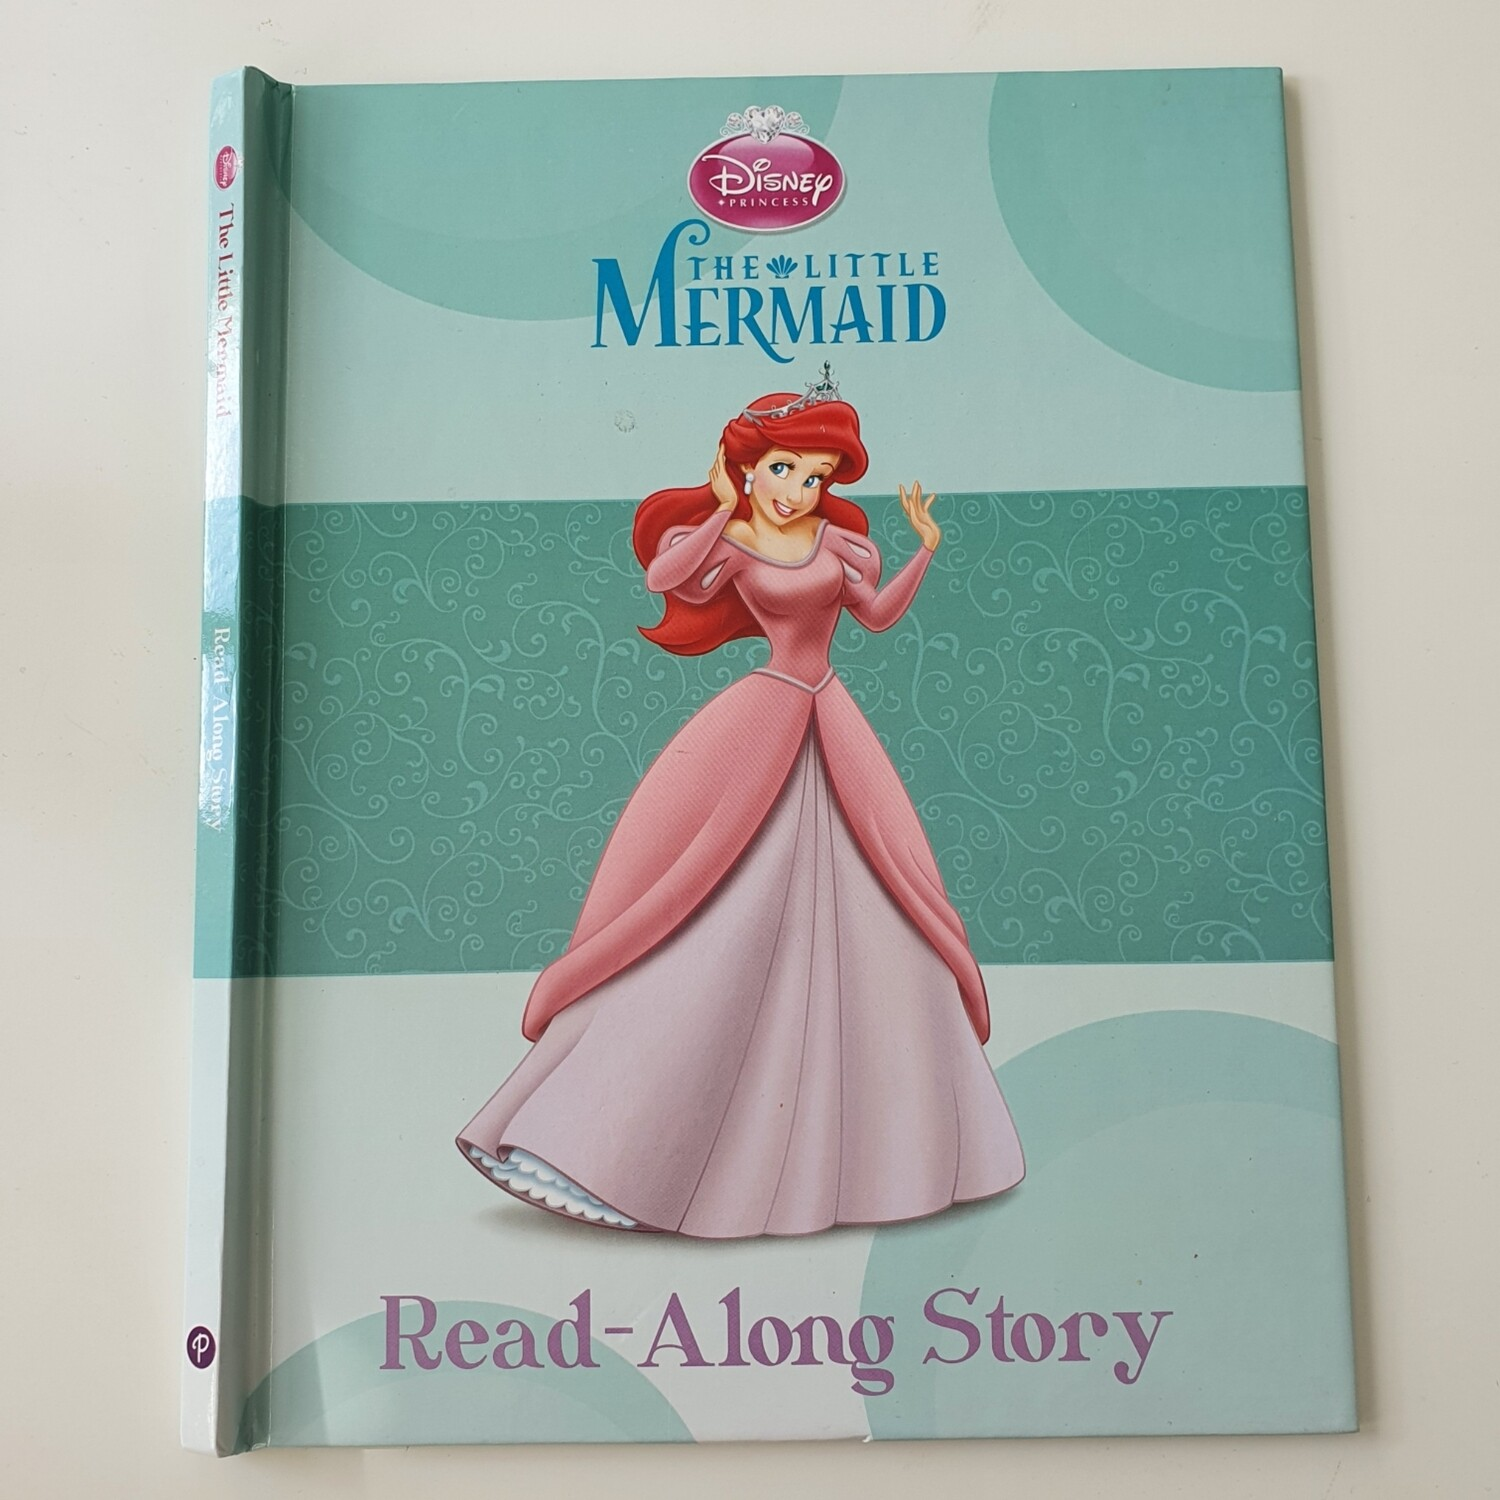 Little Mermaid Notebook - no original book pages